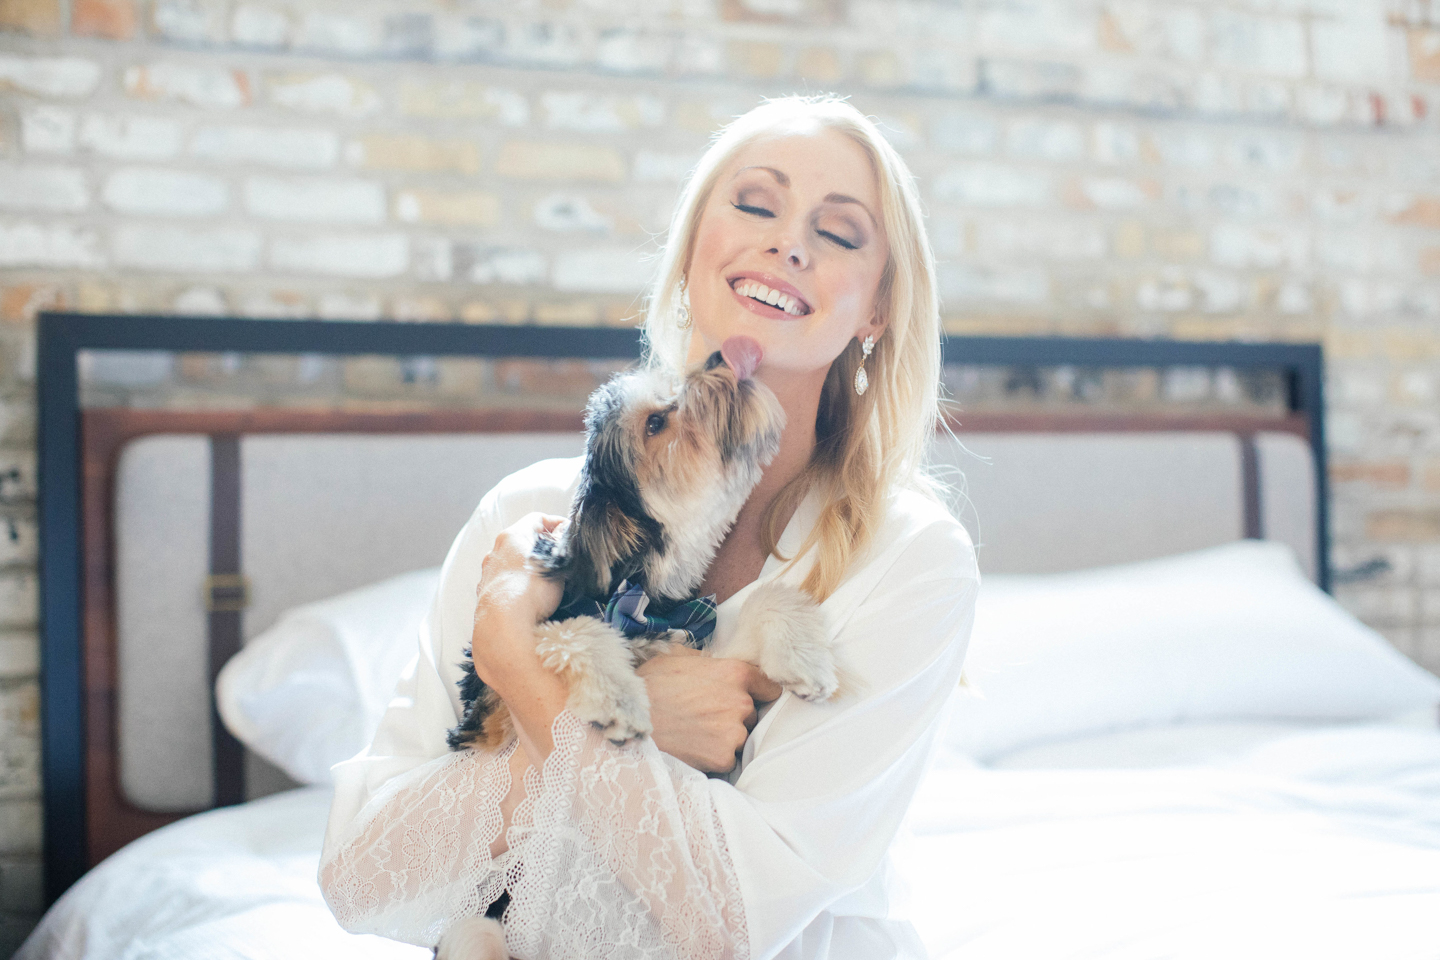 Hewing Hotel Bride getting ready